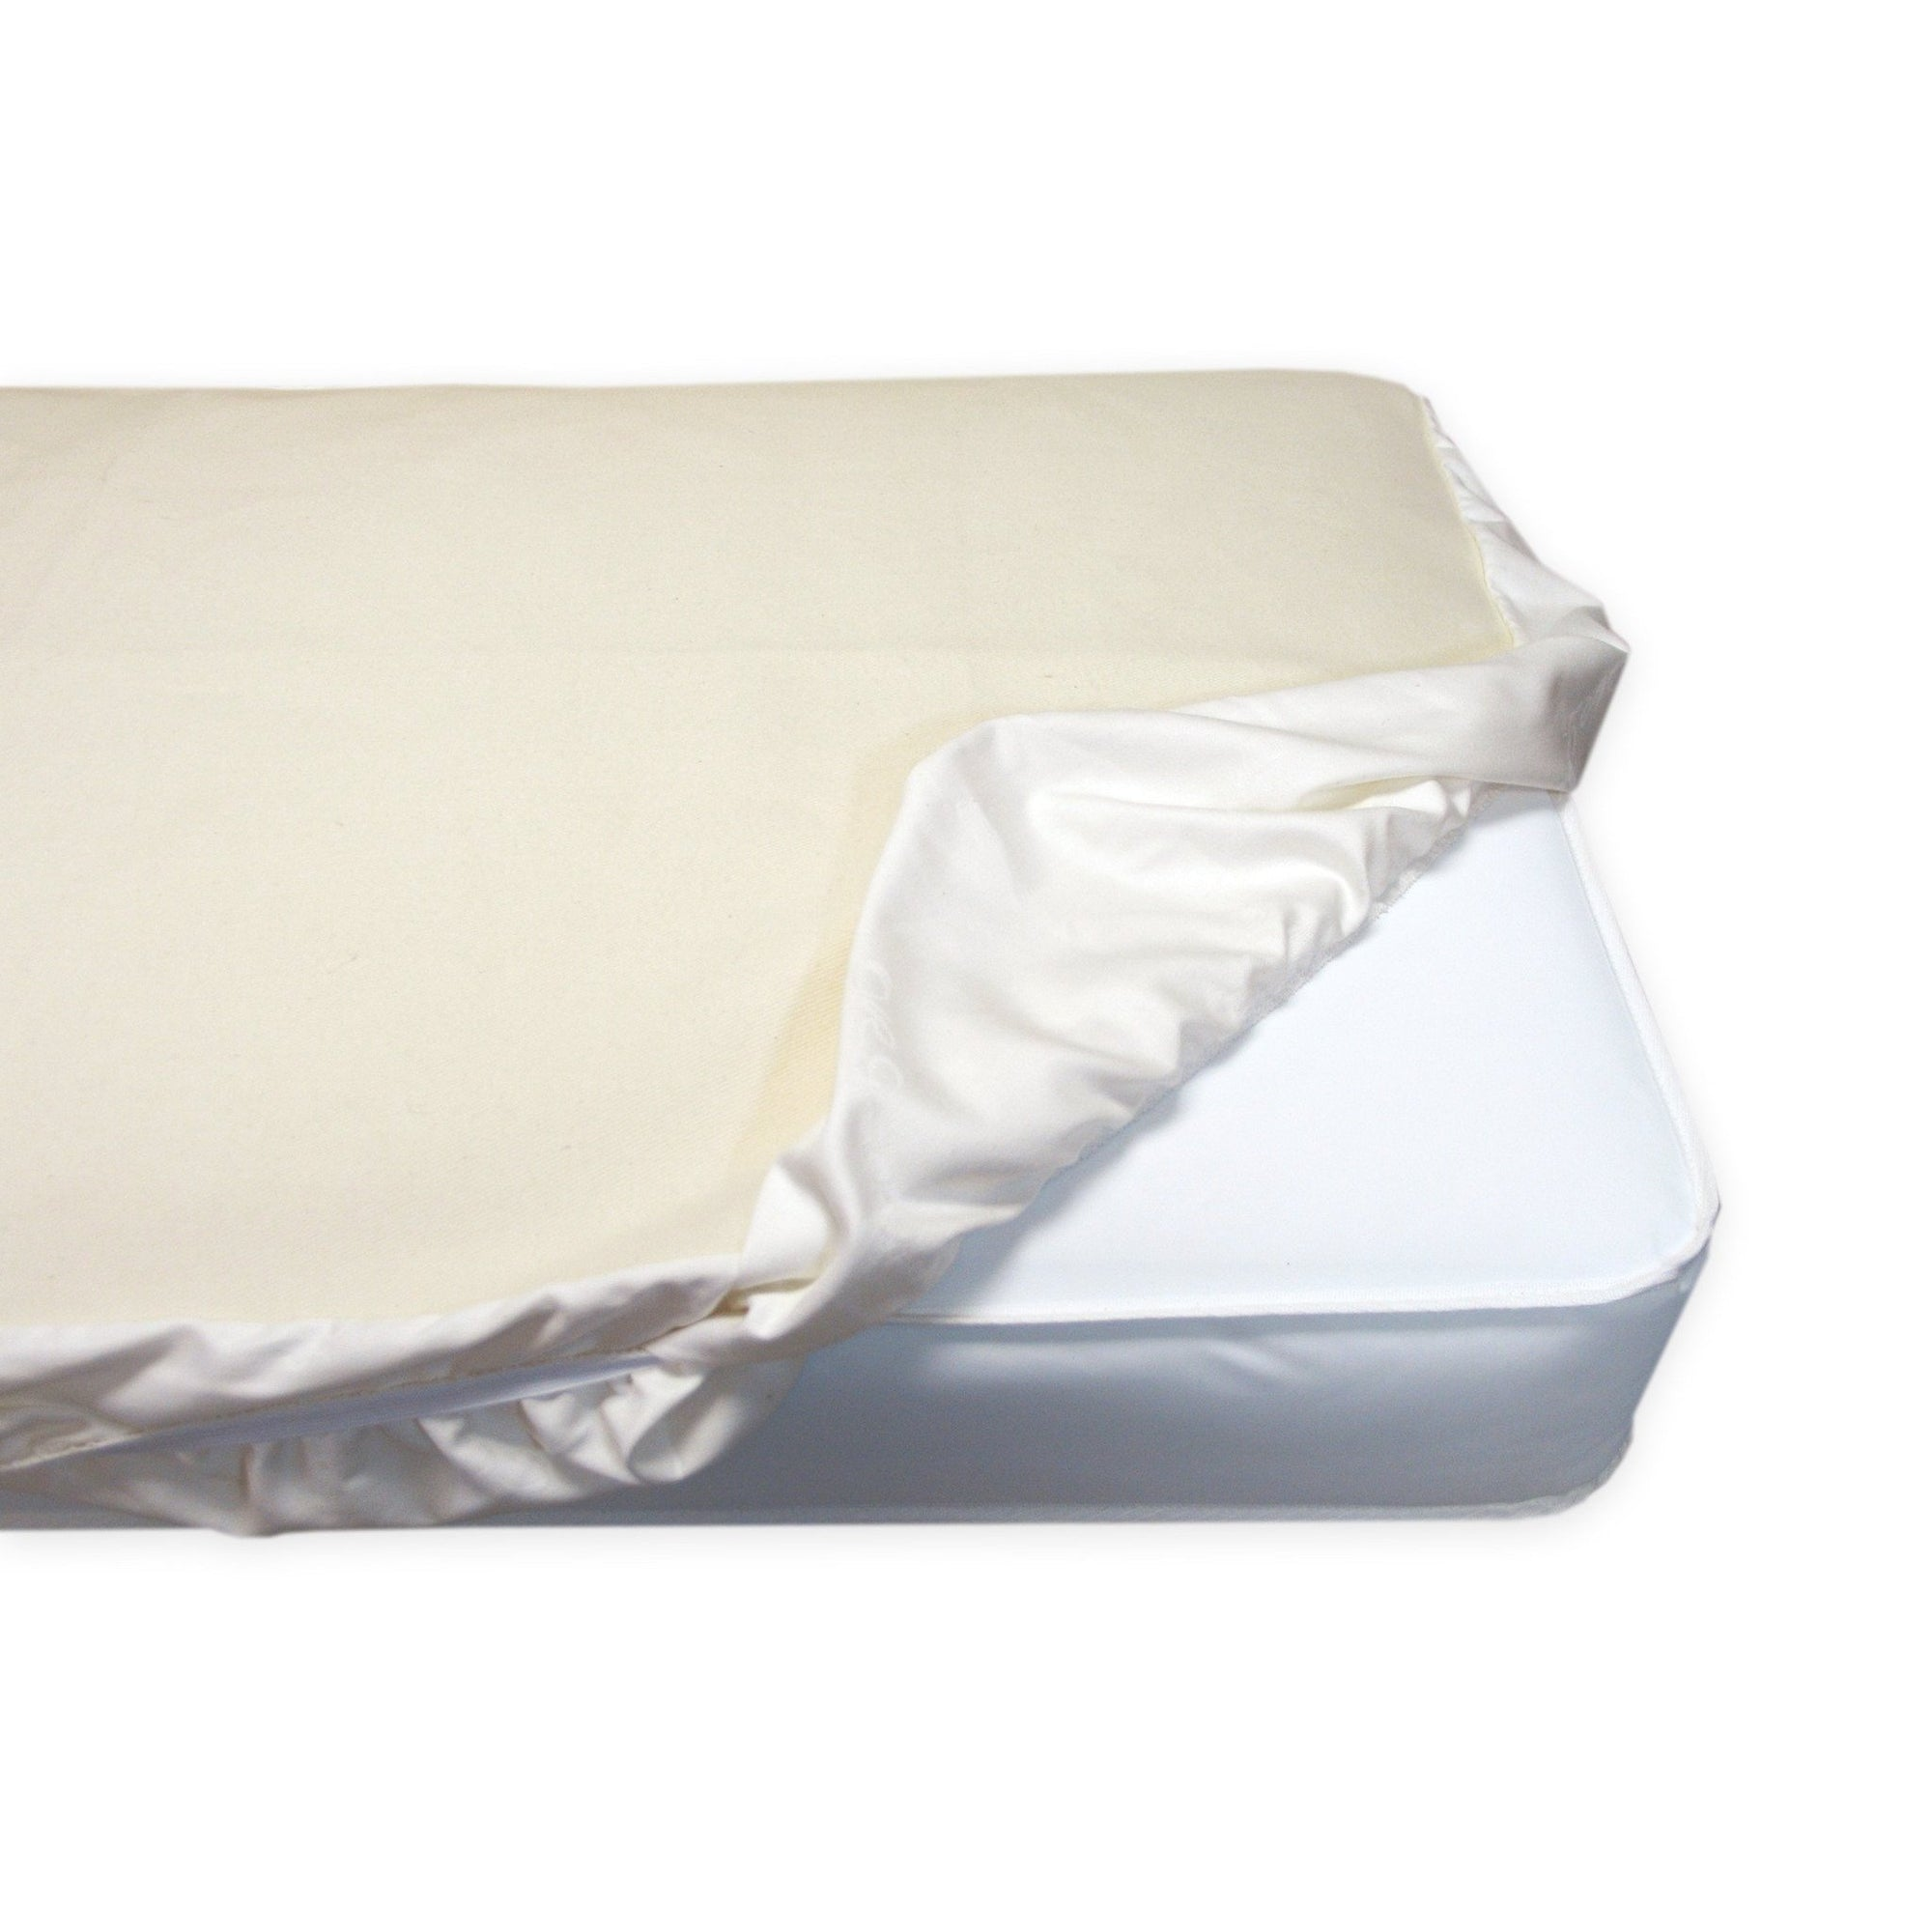 Waterproof Protector Crib Pad Fitted (28 x 52 x 6)-Protector Pads-Default-Jack and Jill Boutique